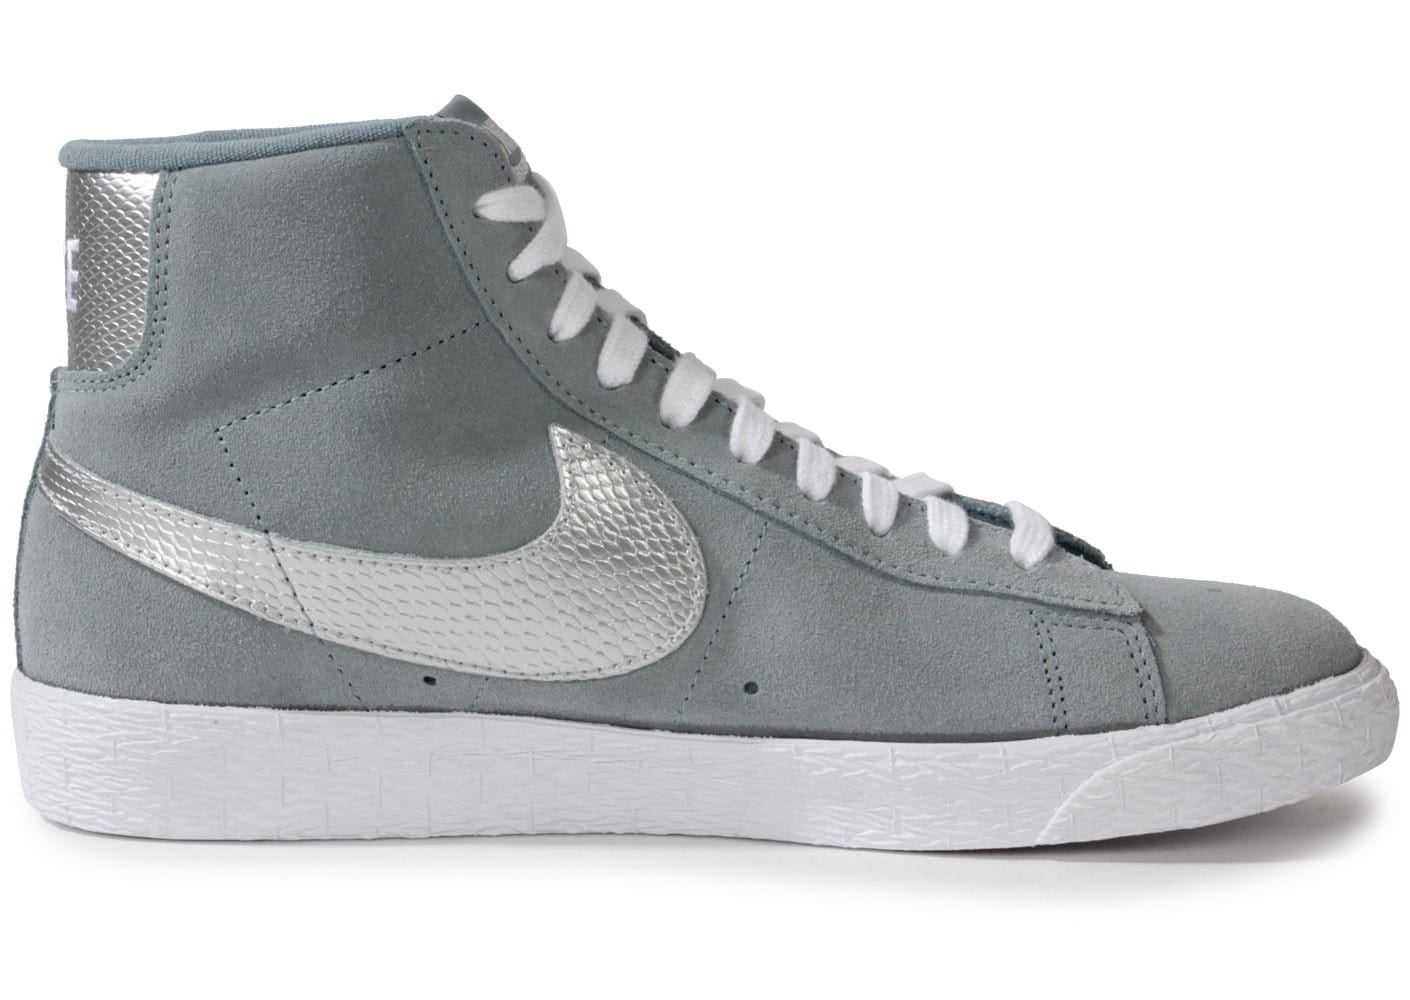 nike blazer mid grise chaussures chaussures chausport. Black Bedroom Furniture Sets. Home Design Ideas